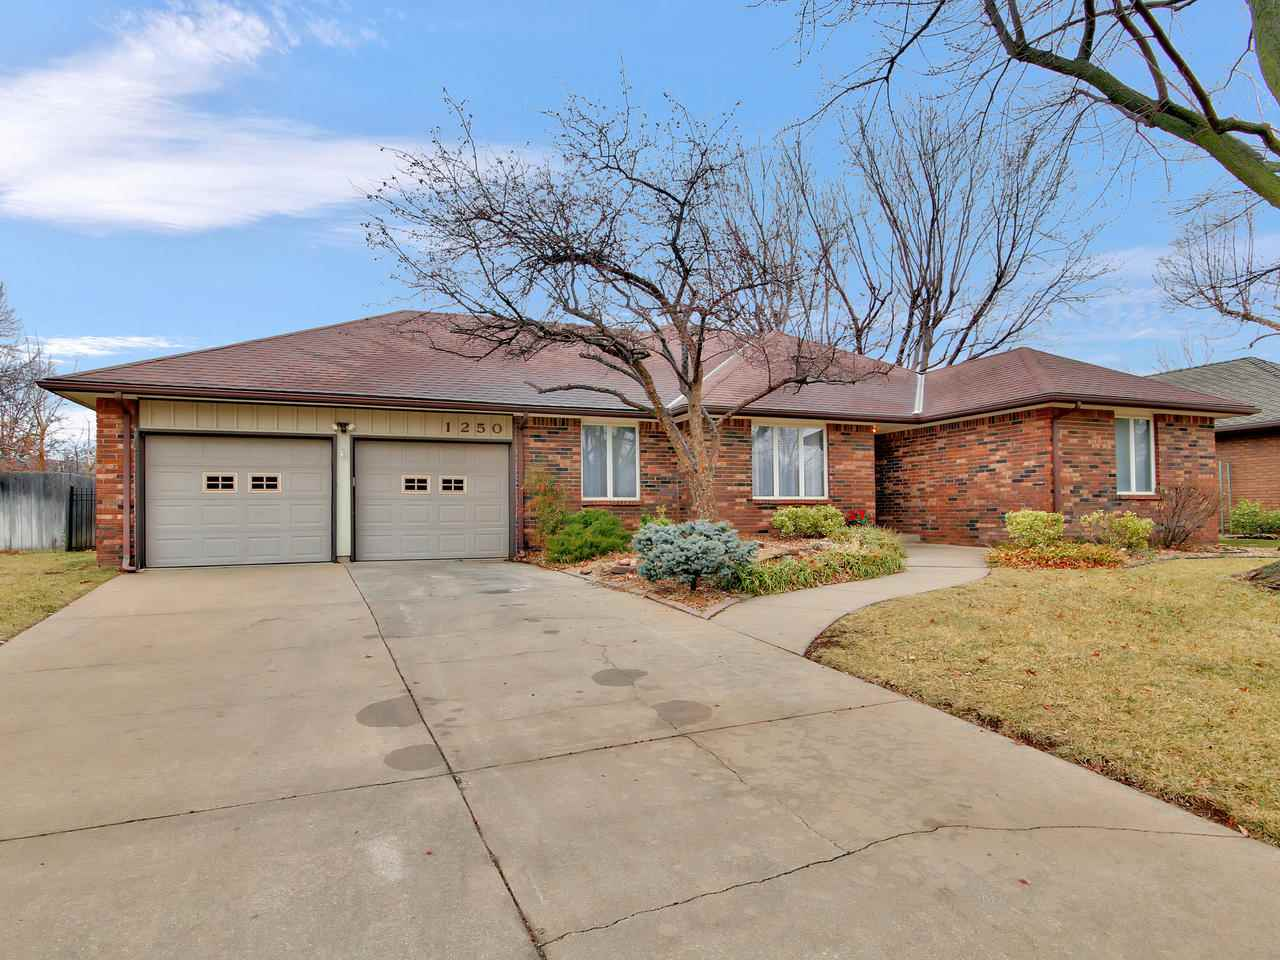 Spacious brick ranch almost 3,000 sq. ft. on quiet cul-de-sac in a lovely Derby neighborhood! Granit